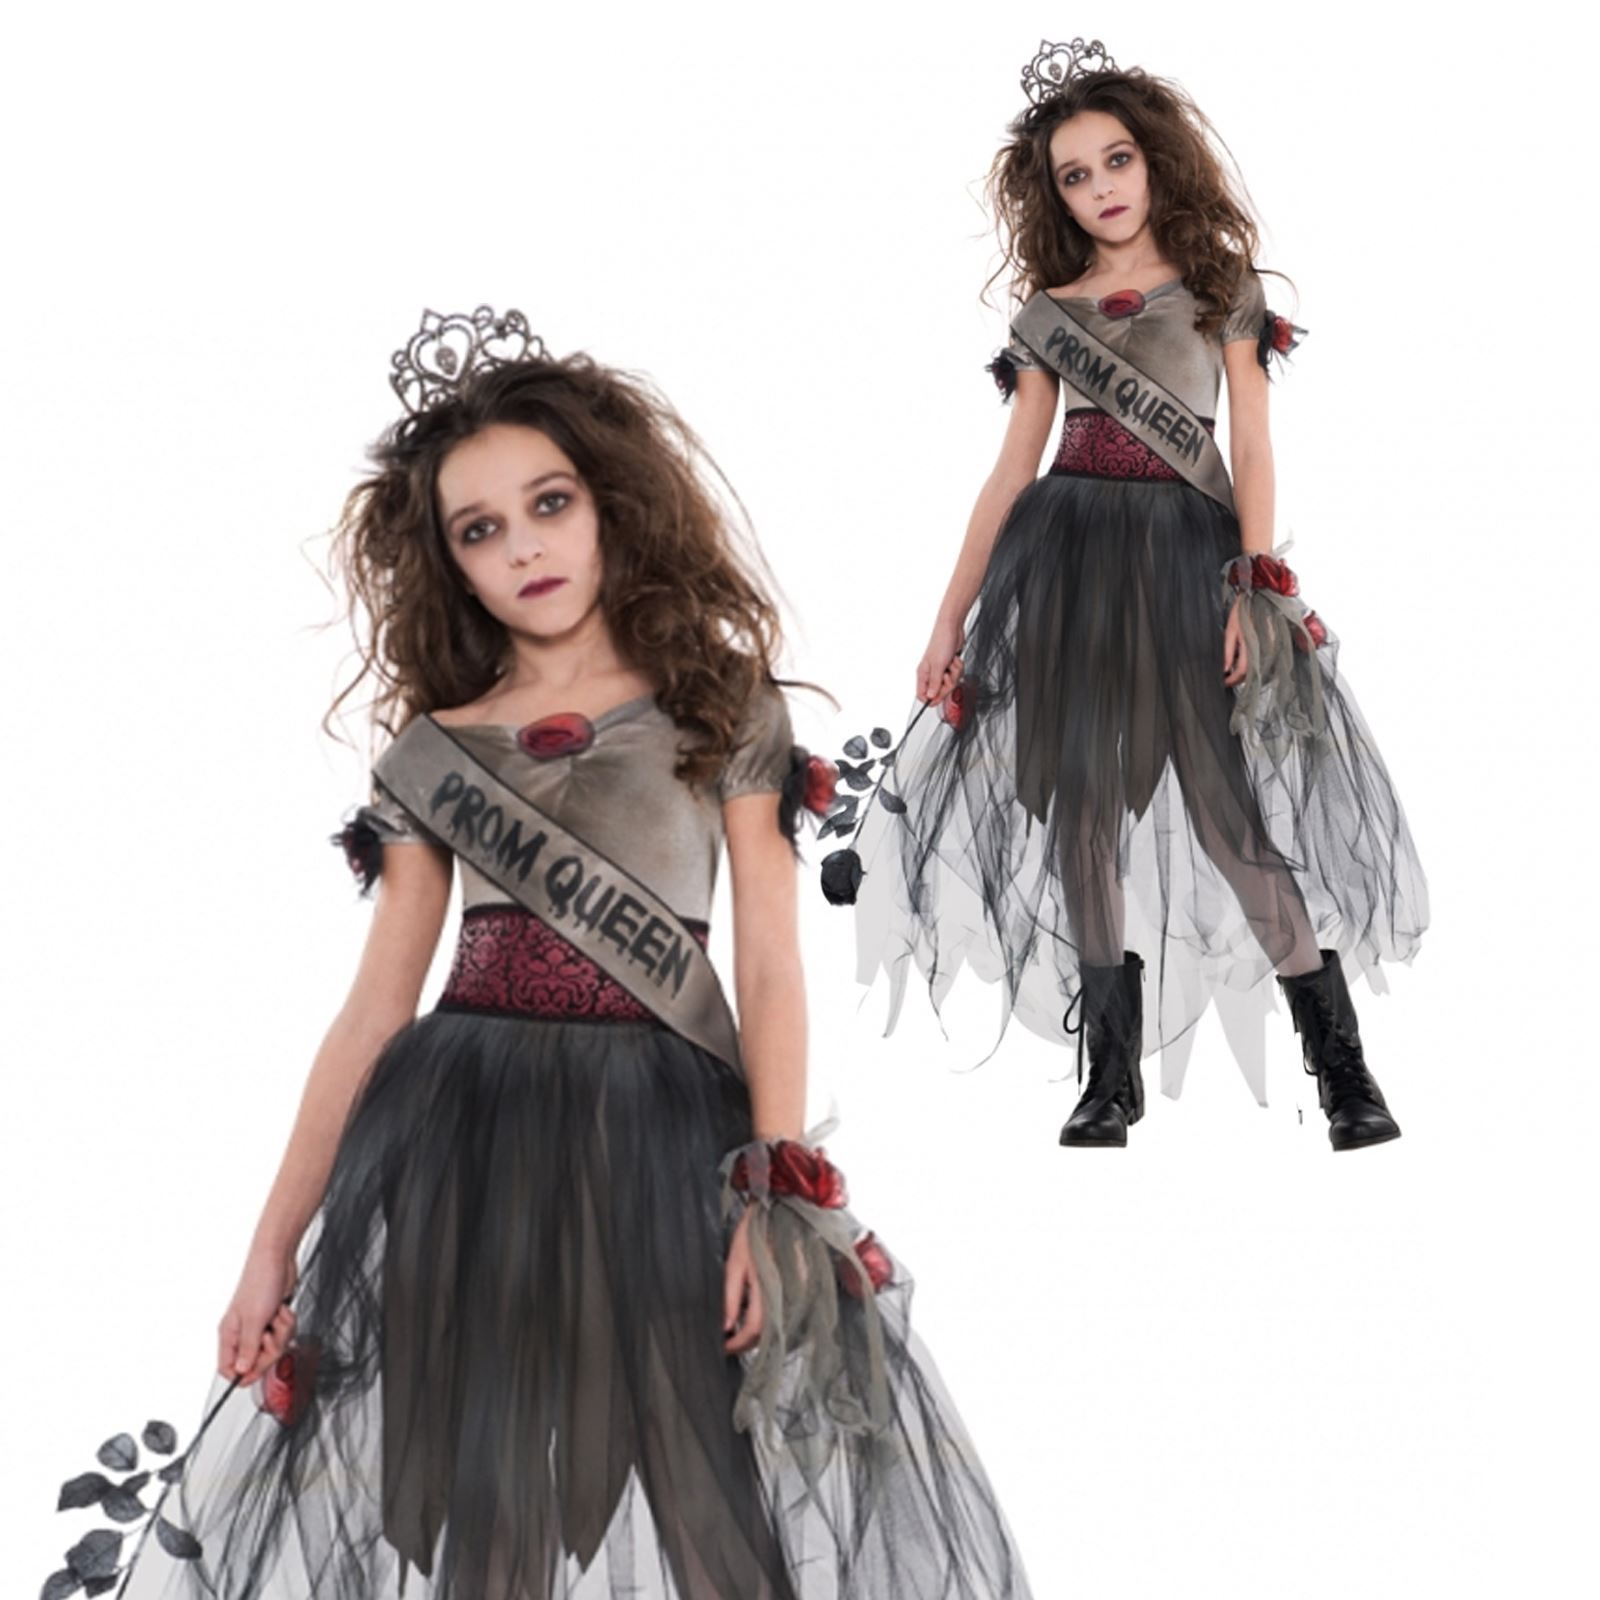 m dchen teen kinder zombie prom queen halloween zombie kost m kleid outfit ebay. Black Bedroom Furniture Sets. Home Design Ideas